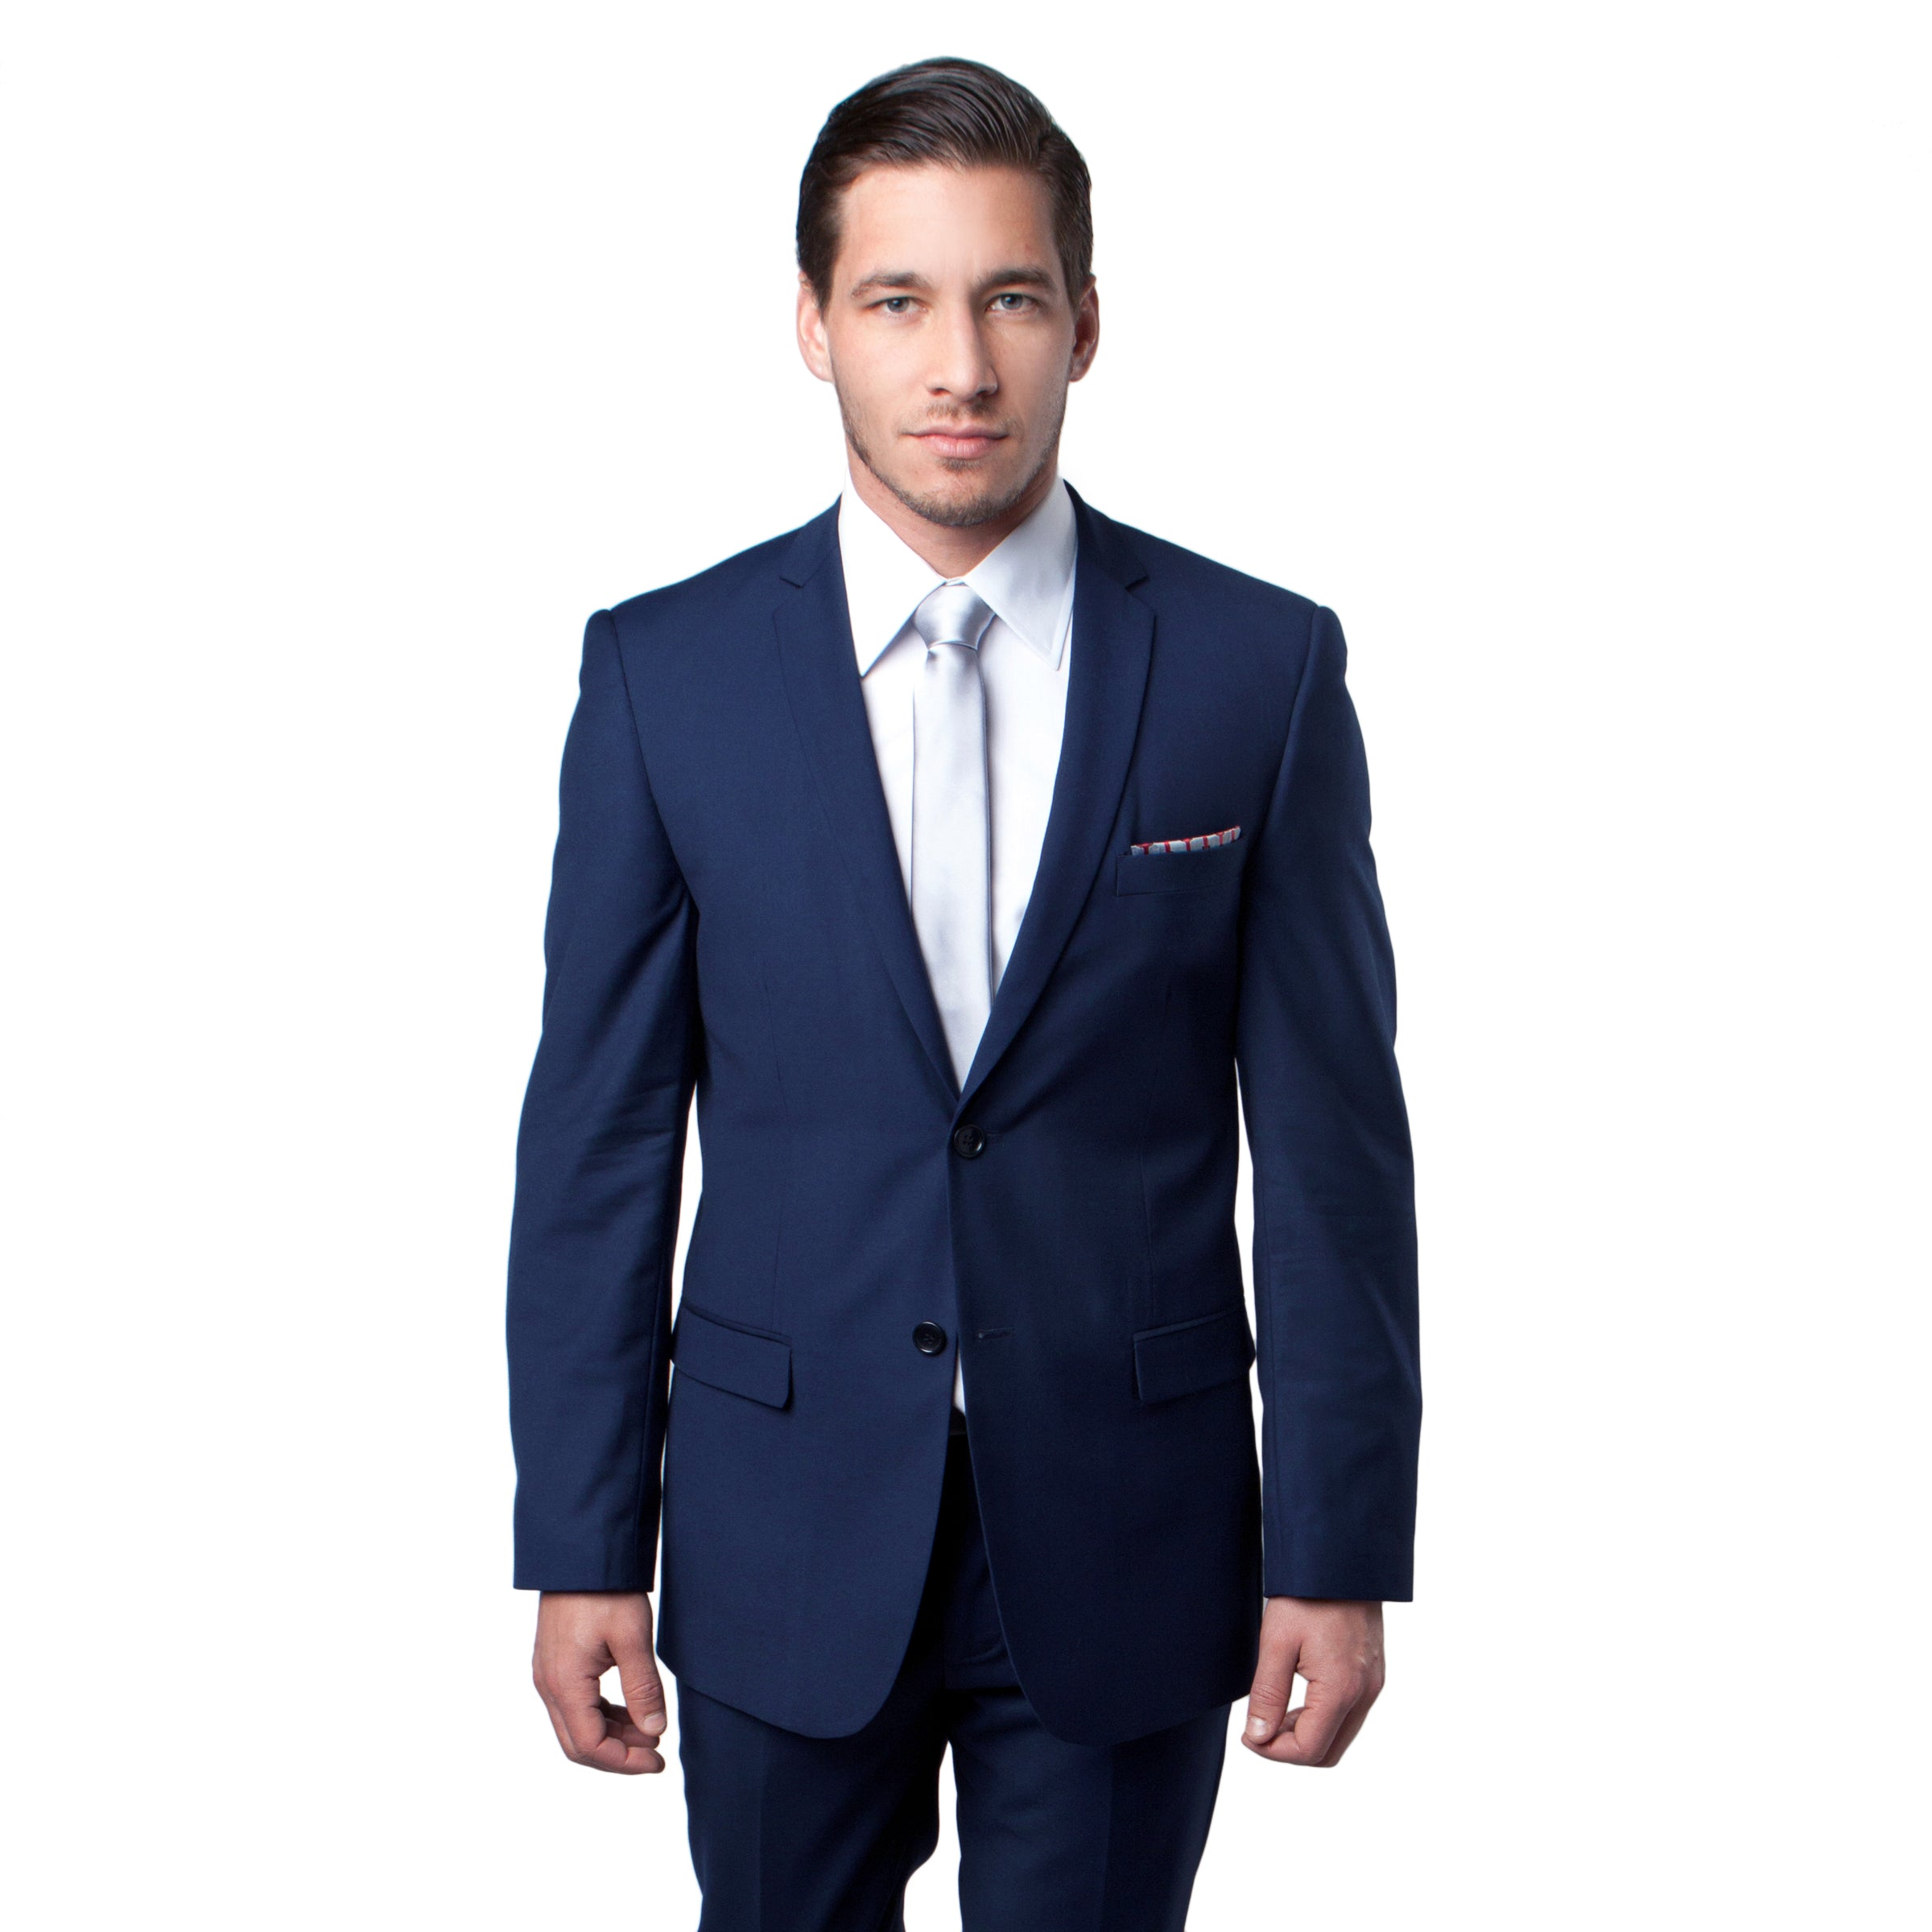 Navy / Blue Suit For Men Formal Suits For All Ocassions M085S-11